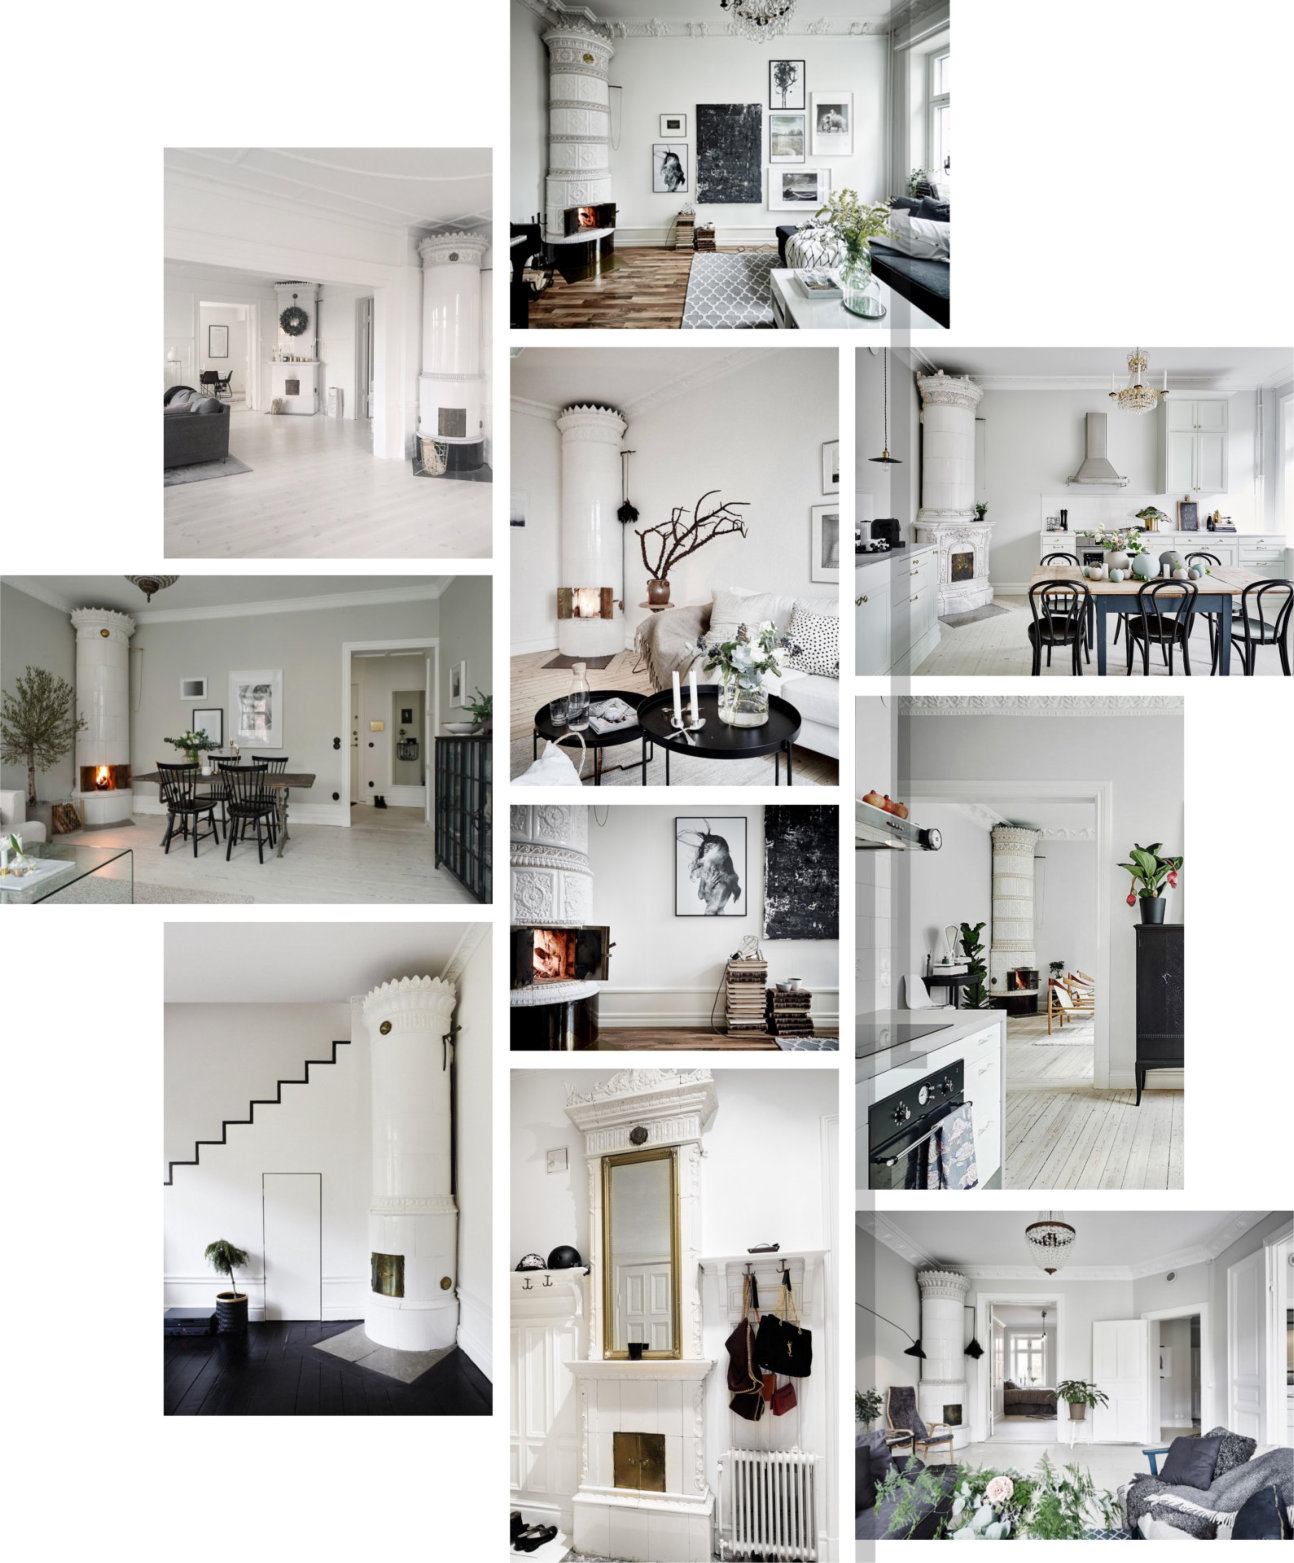 interiorlines_homestyling_sved_apartman0k.jpg